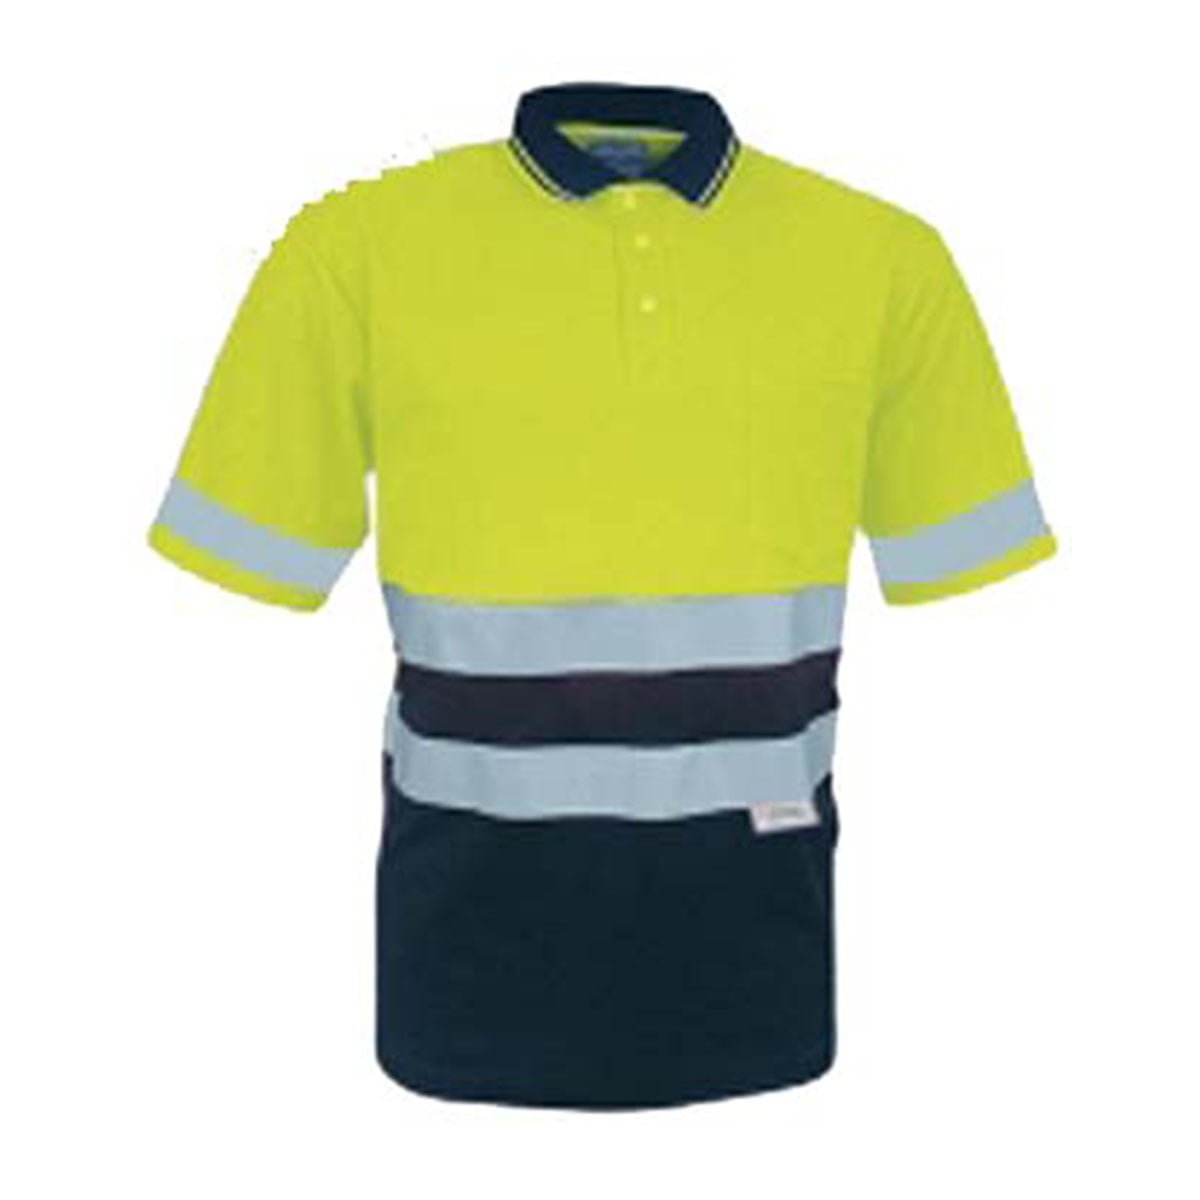 HI-VIS POLYFACE/COTTON BACK POLO WITH 3M TAPE -S/S-Lime / Navy